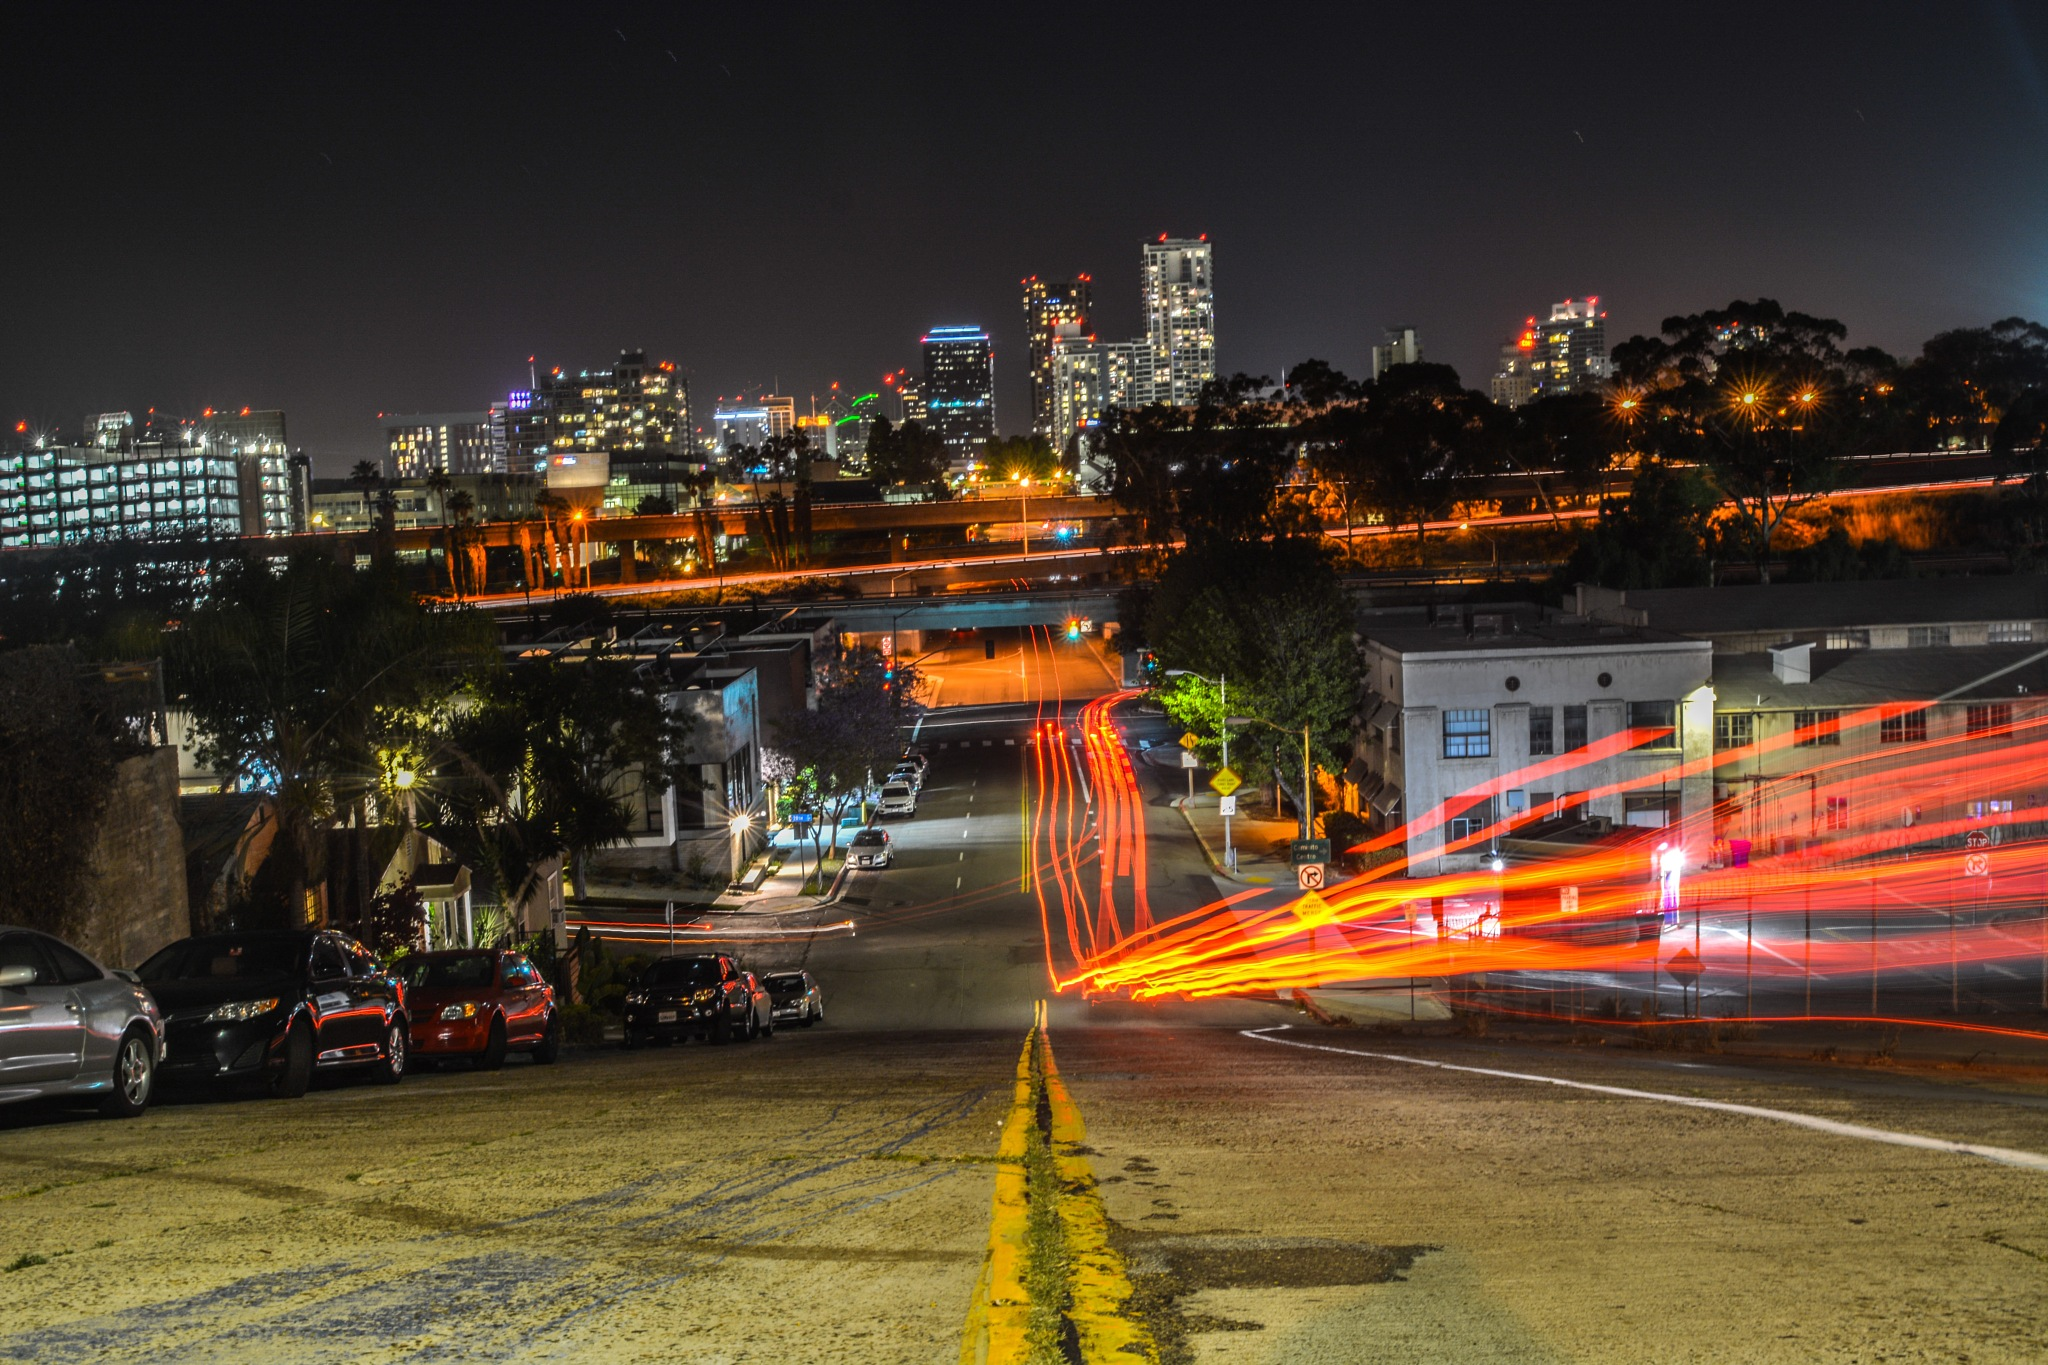 Lean City by Isaiah Williams